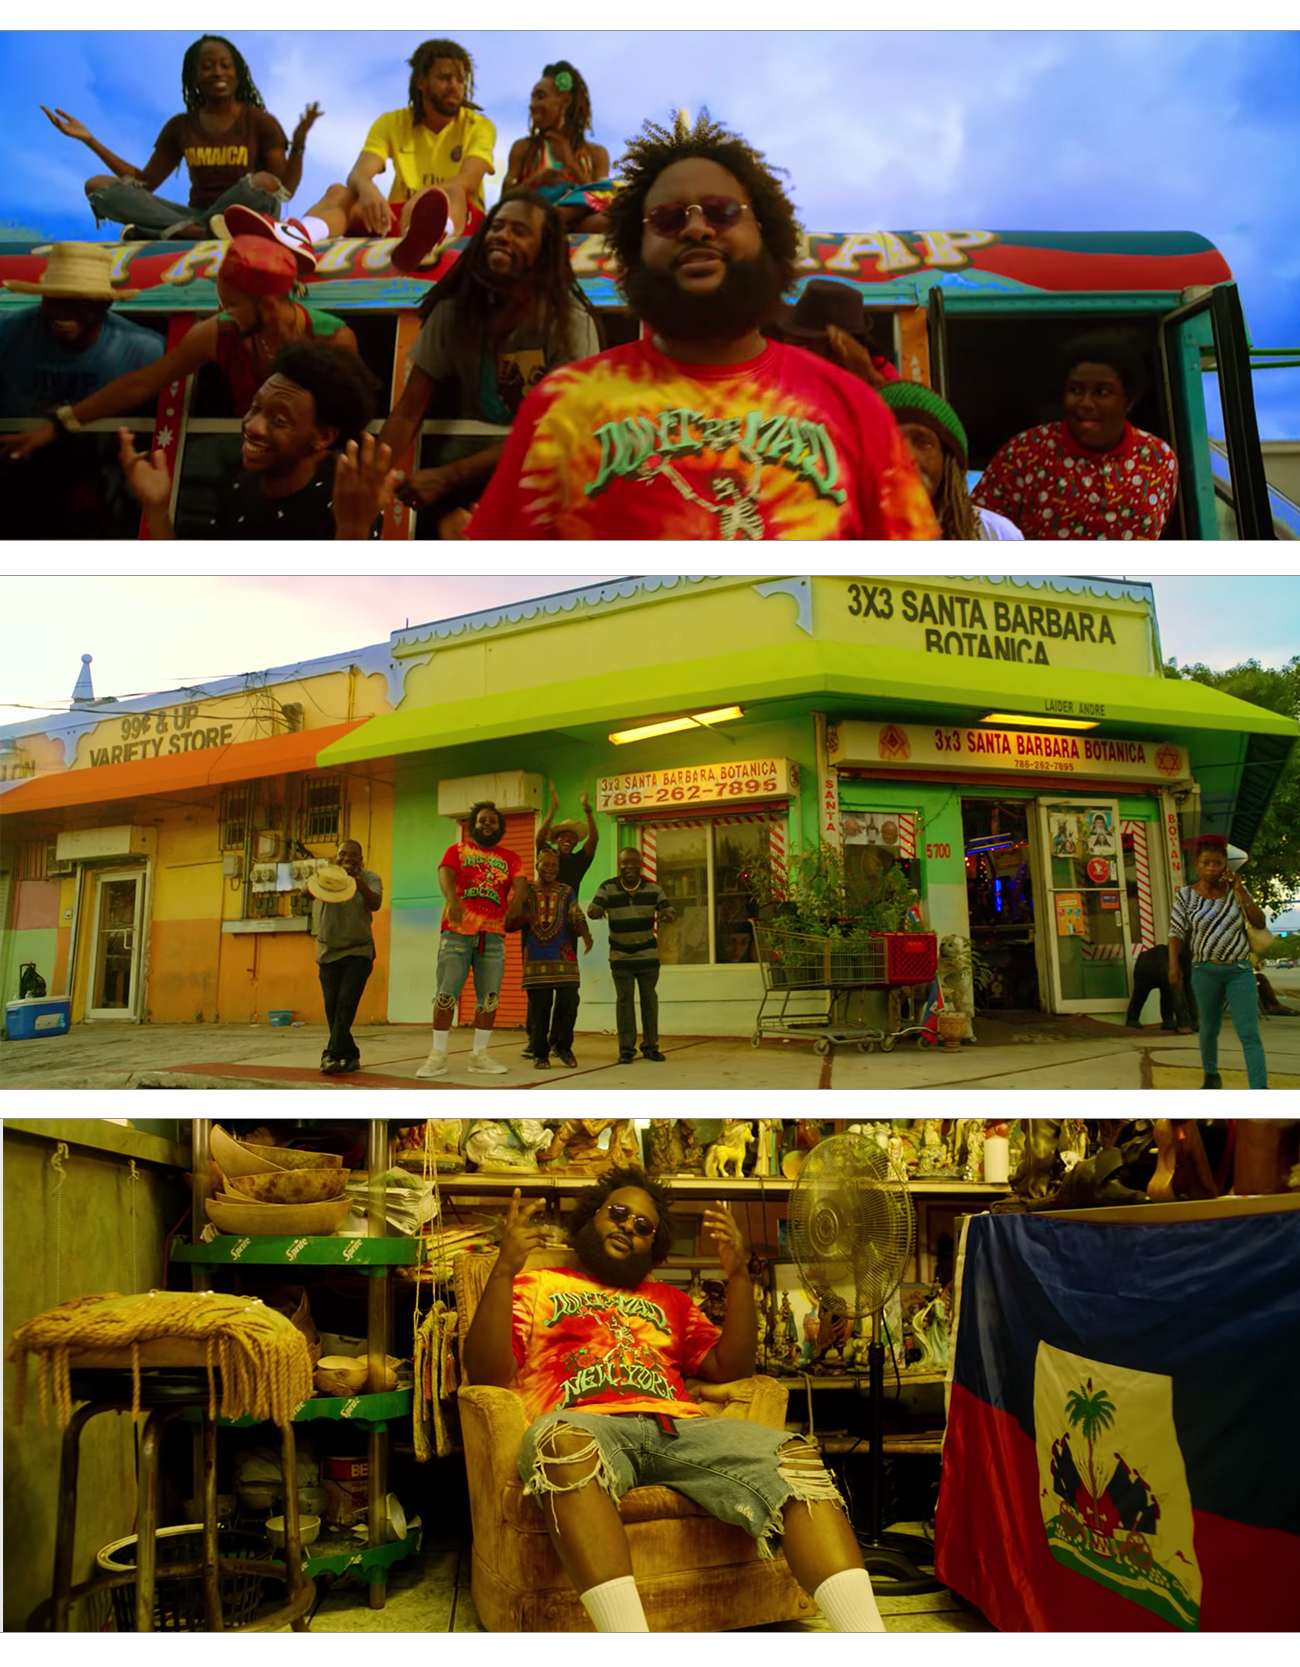 "Bas ft j.cole""Tribe"" - director: andrew nisinson"